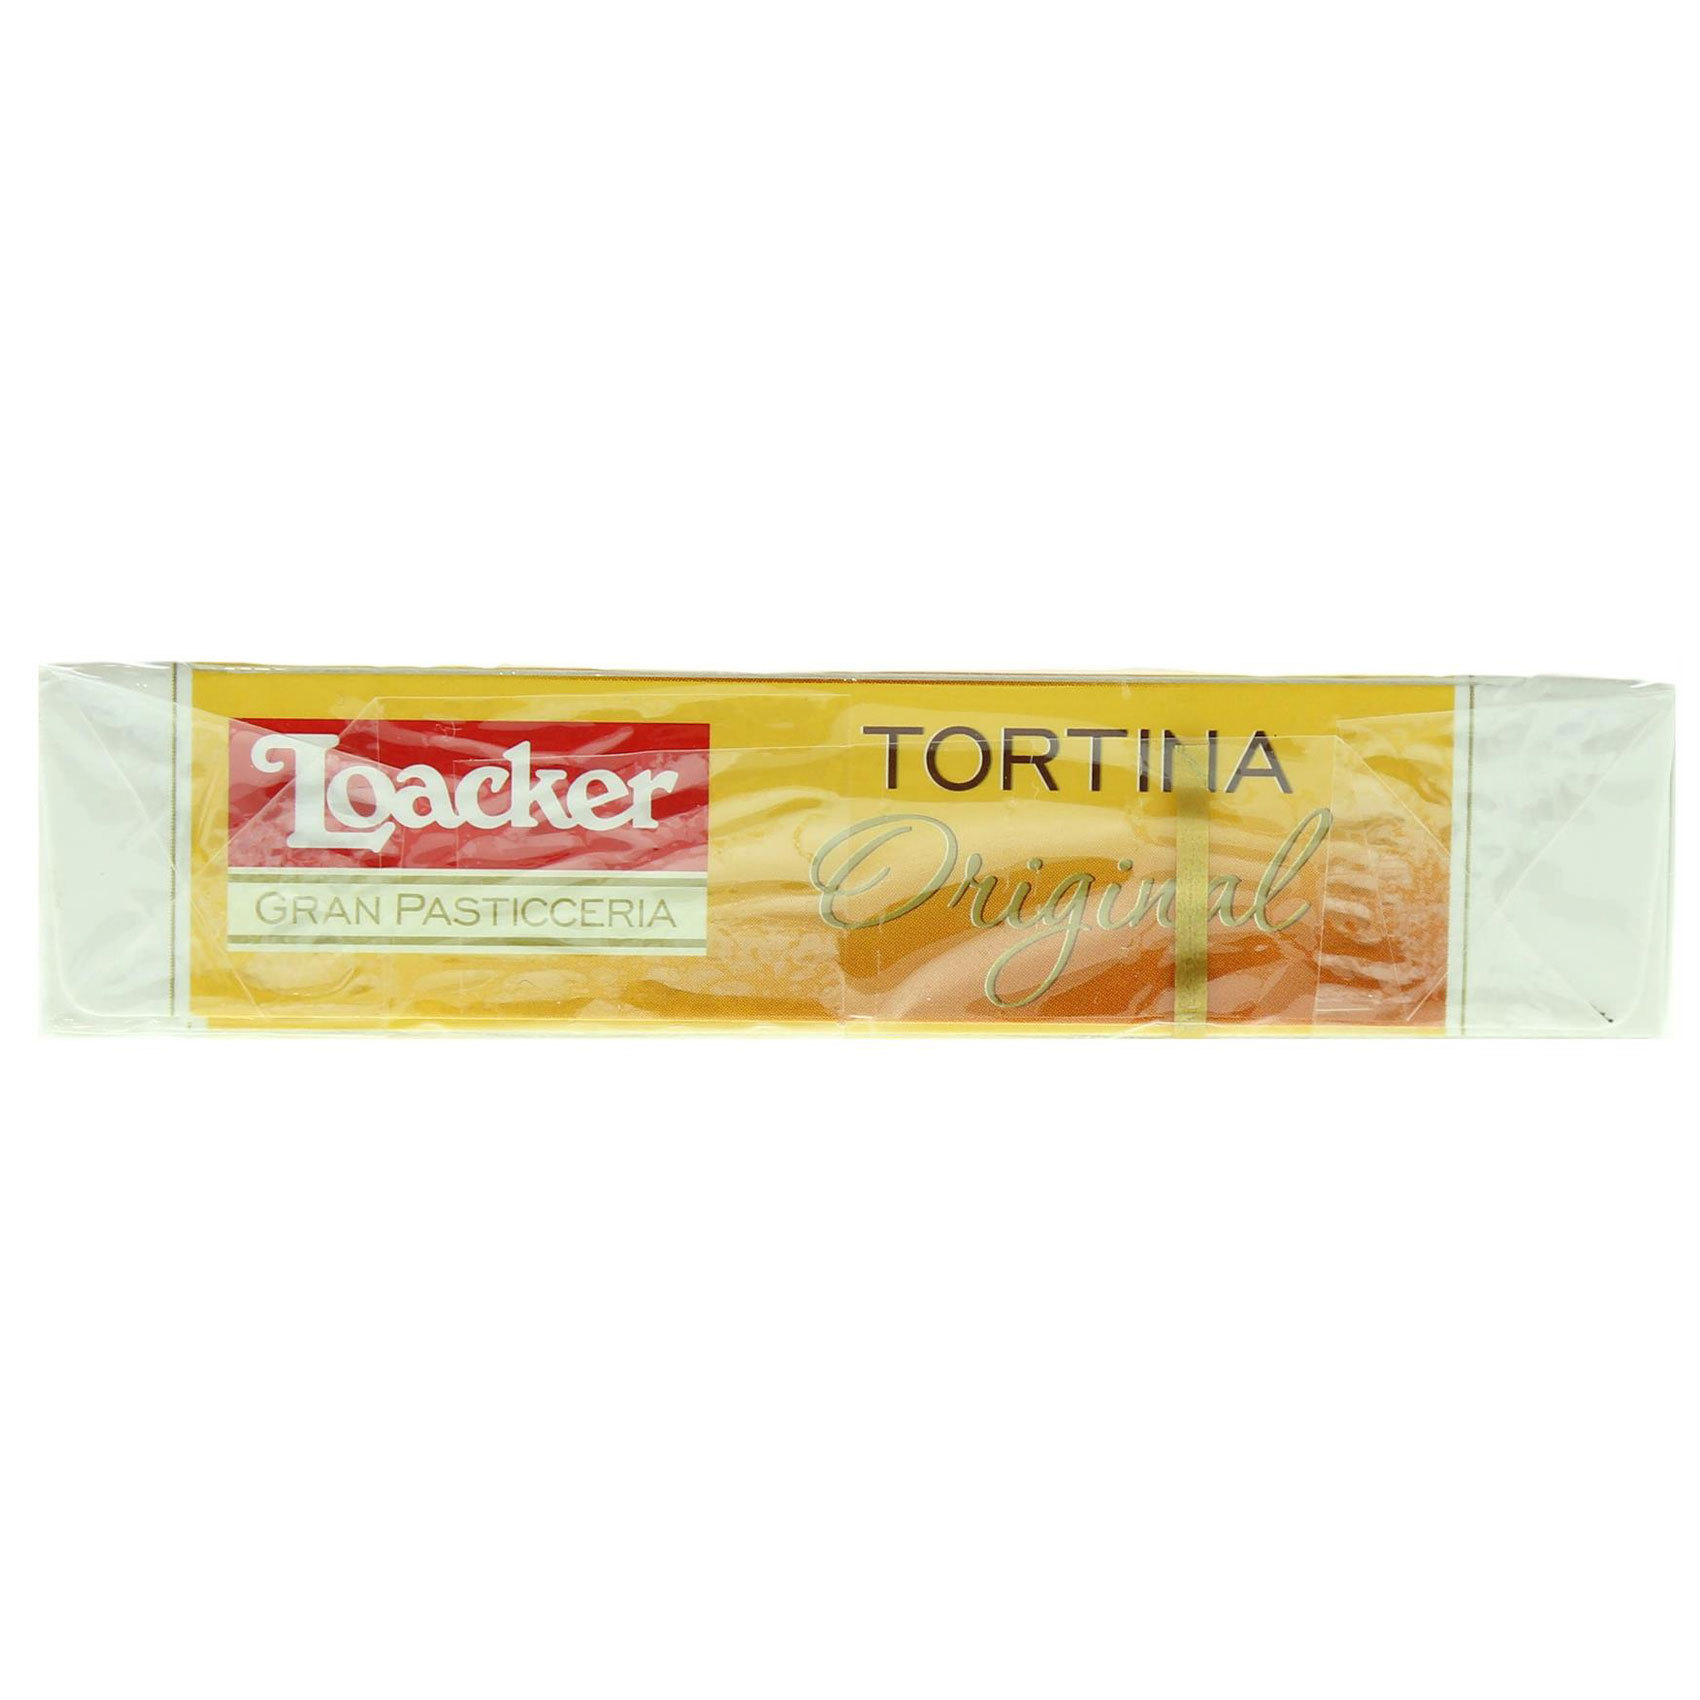 LOACKER TORTINA BISCUITS 125GR